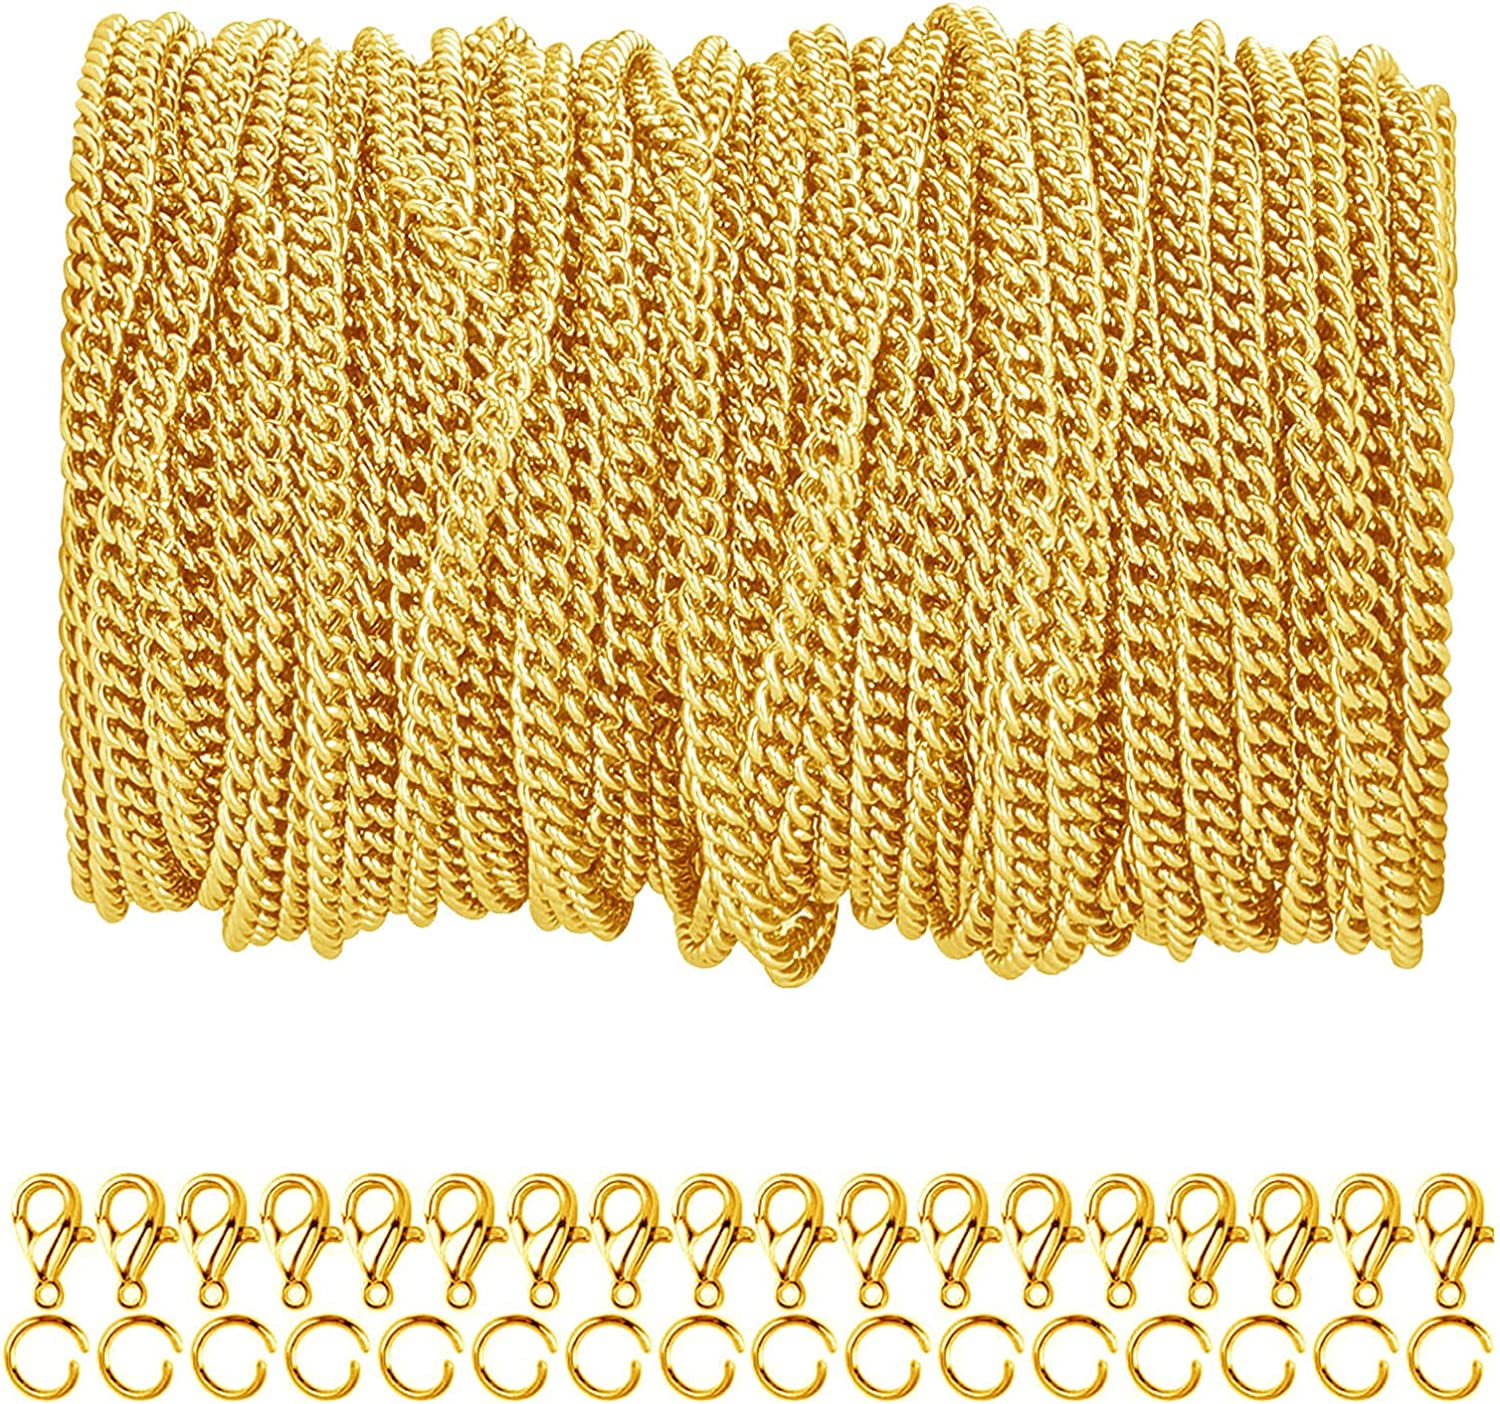 33 Store Feet Gold Plated Brass Curb Link and Rings with Jump Very popular! Chain 50